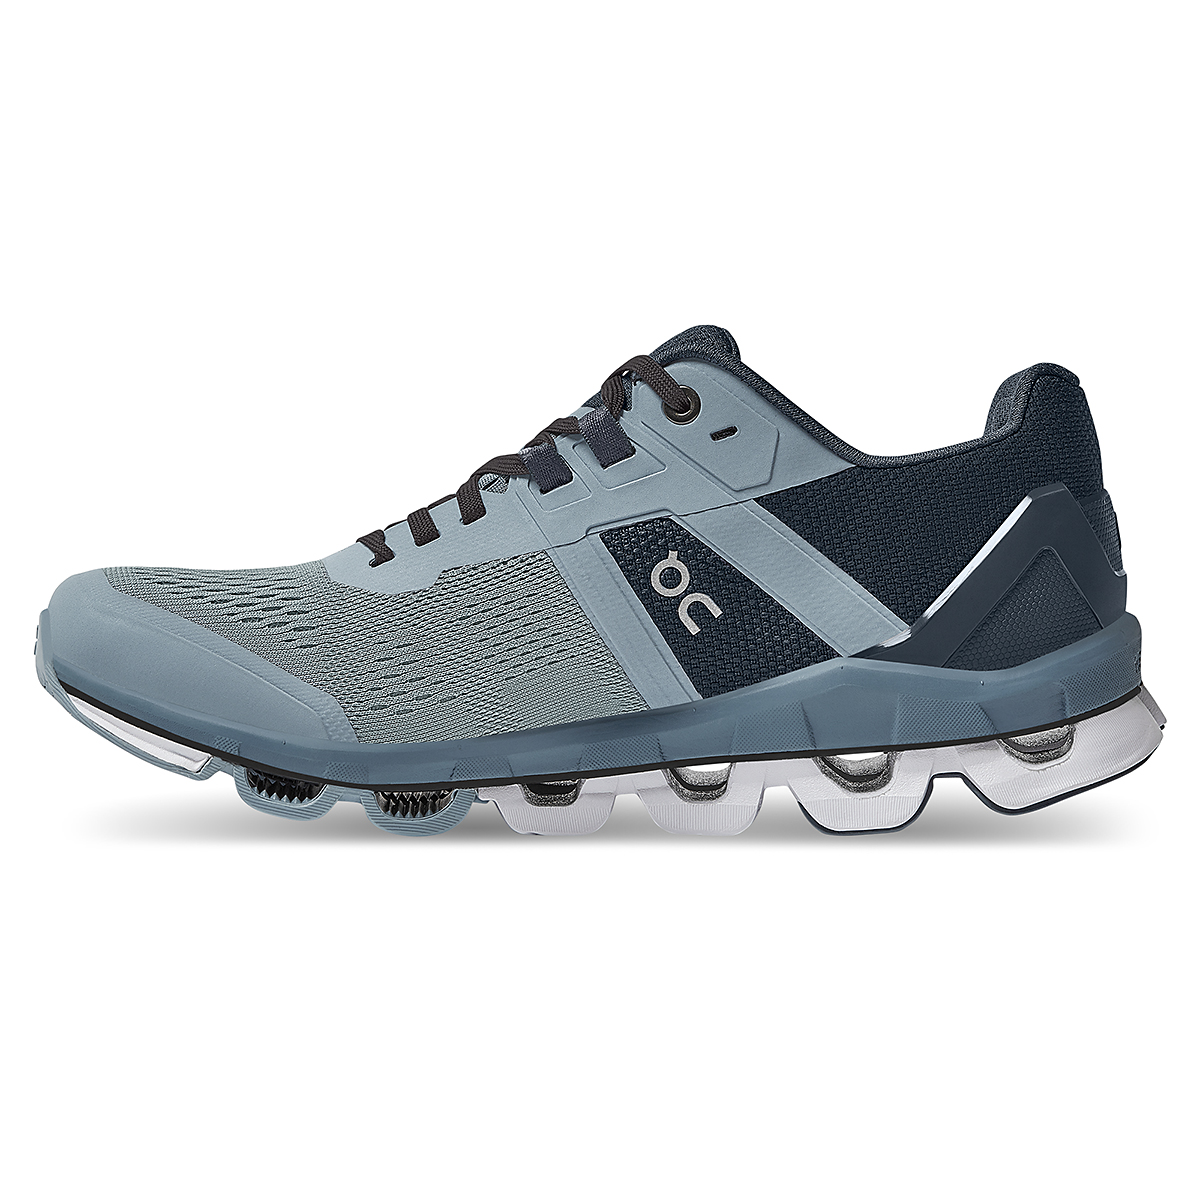 Women's On Cloudace Running Shoe - Color: Wash   Navy - Size: 6.5 - Width: Regular, Wash   Navy, large, image 2